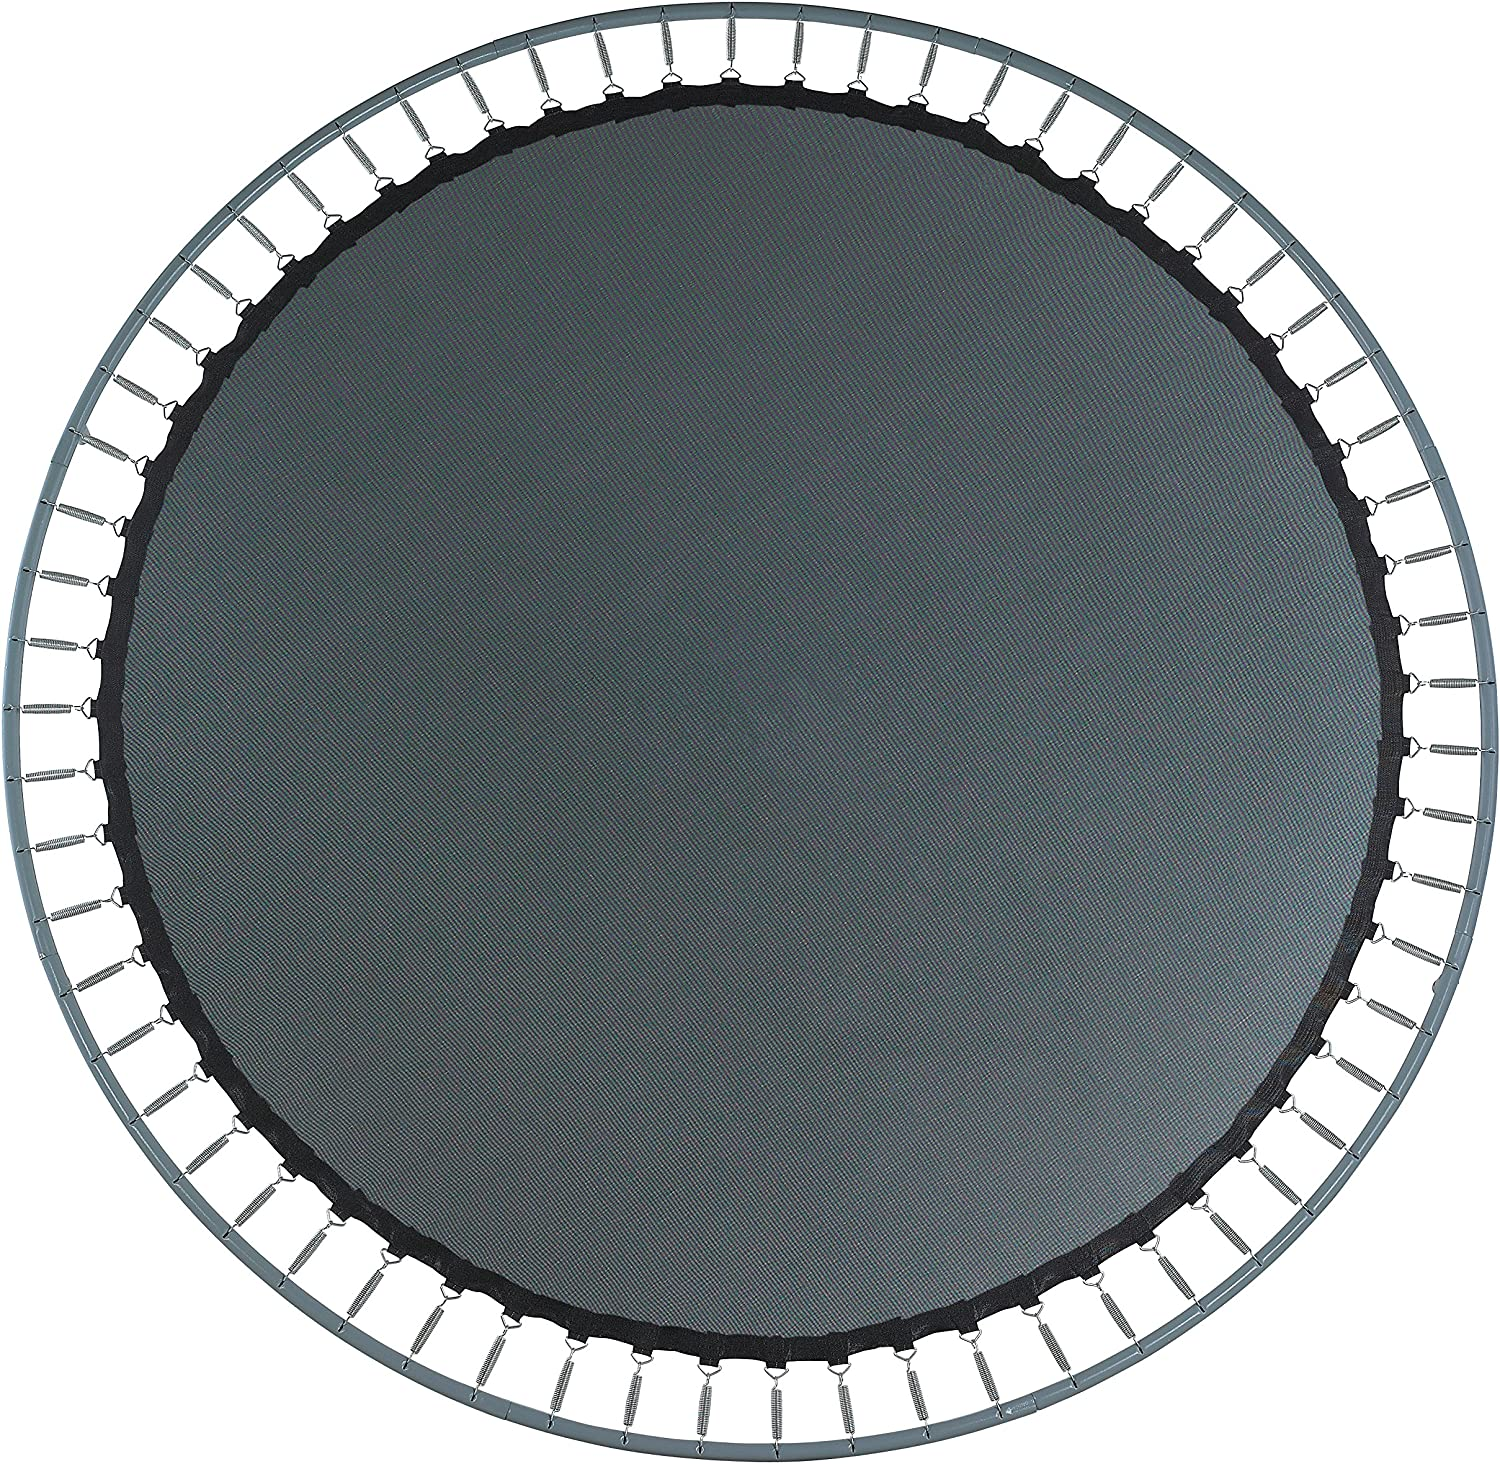 Fits 15 ft Round Trampoline Frame with 100 V-Hooks Using 7 Springs Upper Bounce Trampoline Replacement Mat Safe /& Premium Quality Jumping Mat